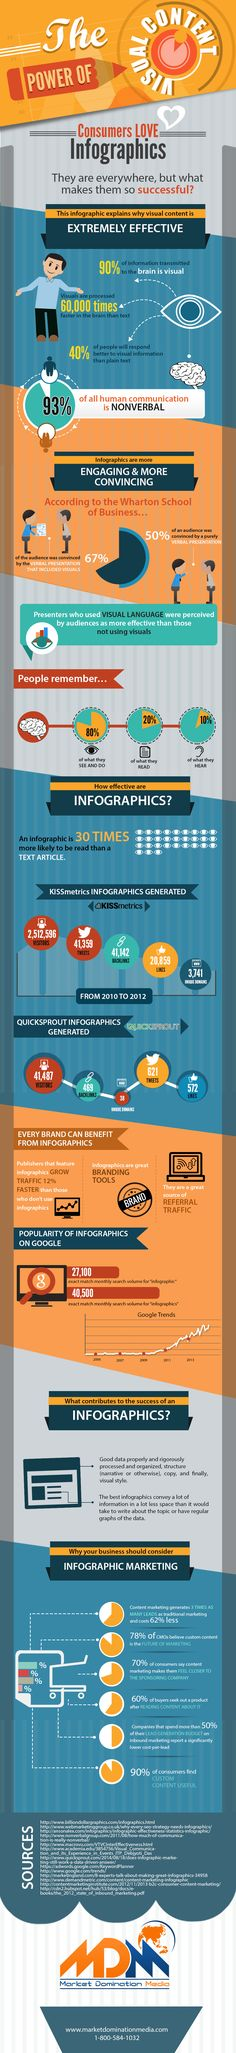 This infographic from Market Domination Media explains the power of visual content and why we should use visual content in our content marketing campaigns. Inbound Marketing, Marketing Visual, Marketing Digital, Content Marketing, Online Marketing, Social Media Marketing, Marketing Technology, Marketing Poster, Marketing Strategies